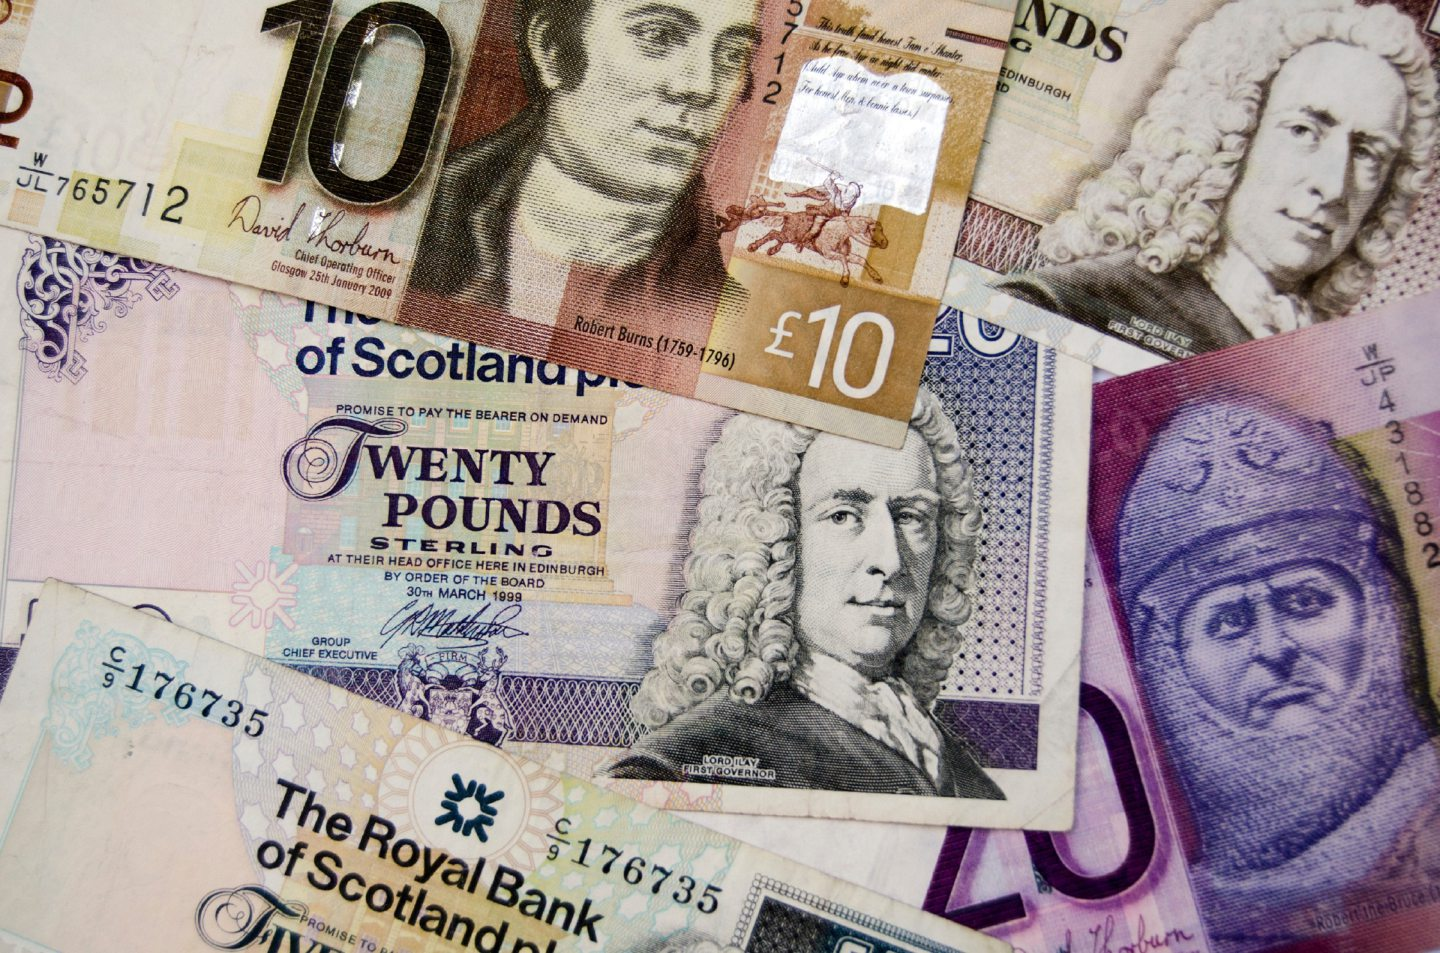 Alex Bell: SNP could help struggling Scots - but talk of Tory cuts suits the independence agenda better